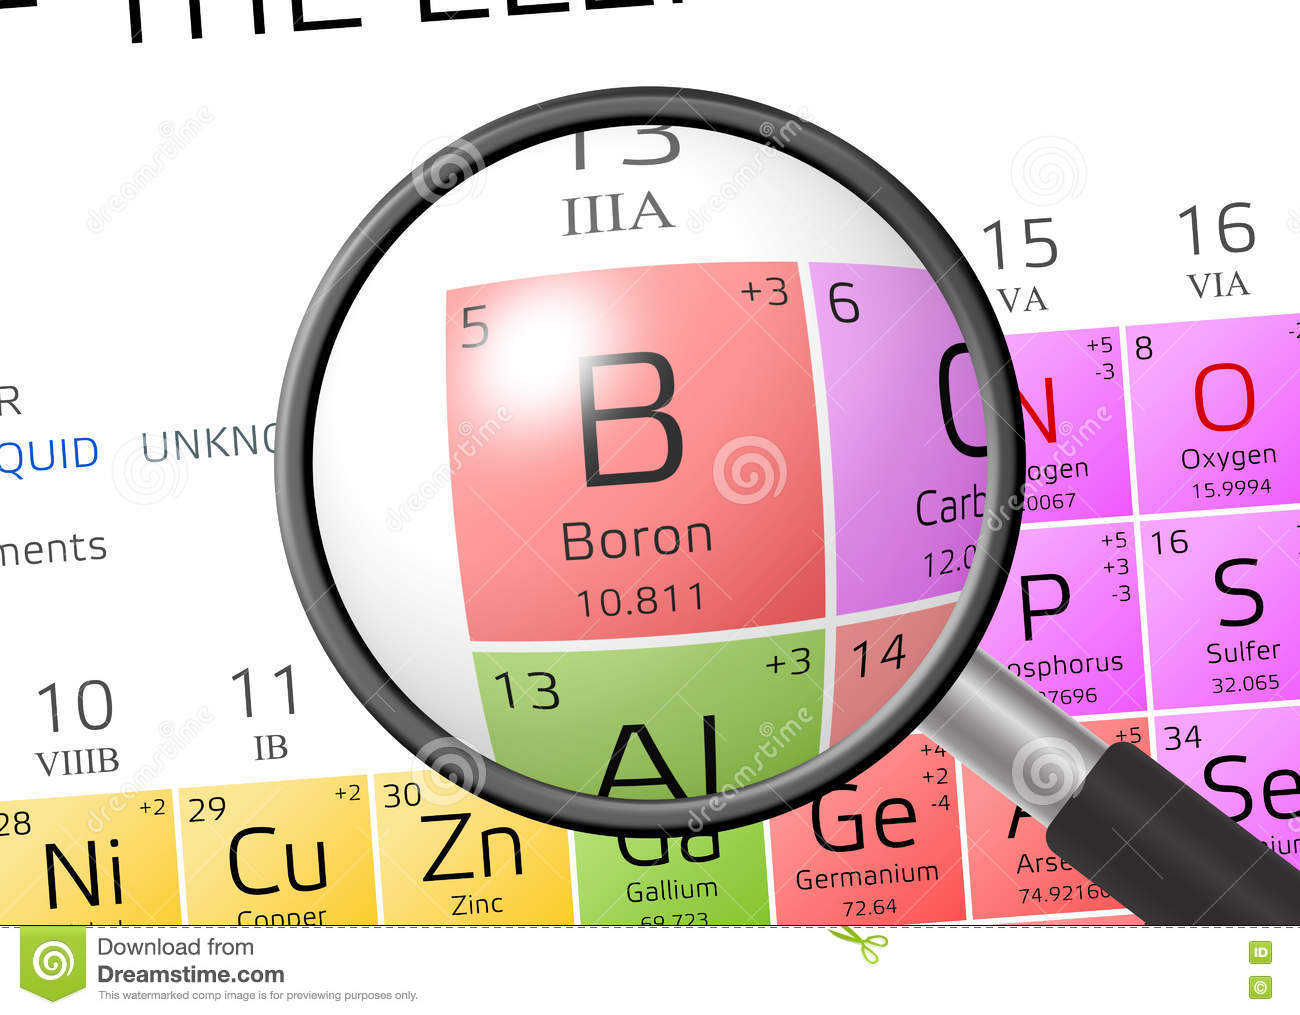 Element of boron with magnifying glass stock illustration download element of boron with magnifying glass stock illustration illustration of liquid elements ccuart Images